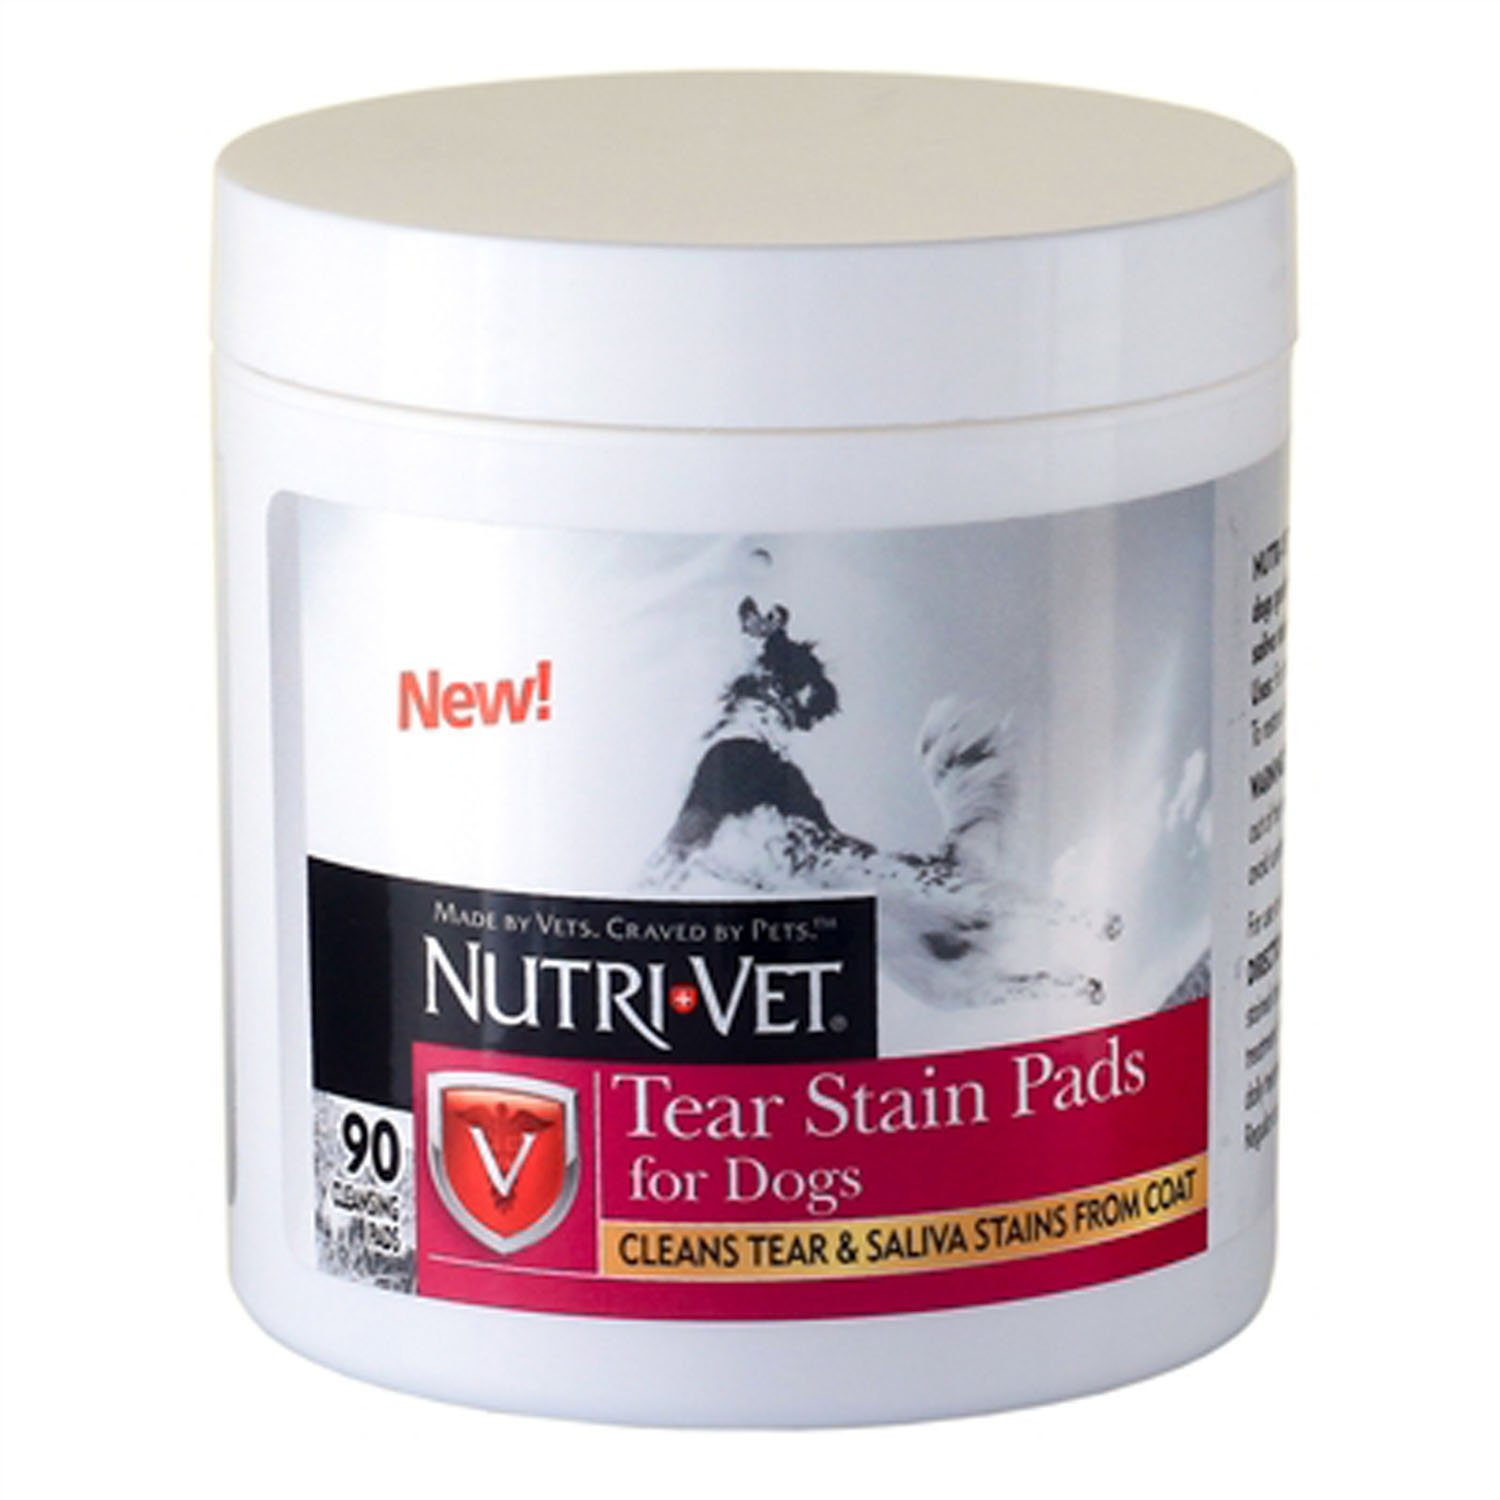 Nutri-Vet Dog Eye Wipes Tear Stain Remover Pads 90 Count Cleans Tear and Saliva Stains from Coat by Nutri-Vet (Image #1)